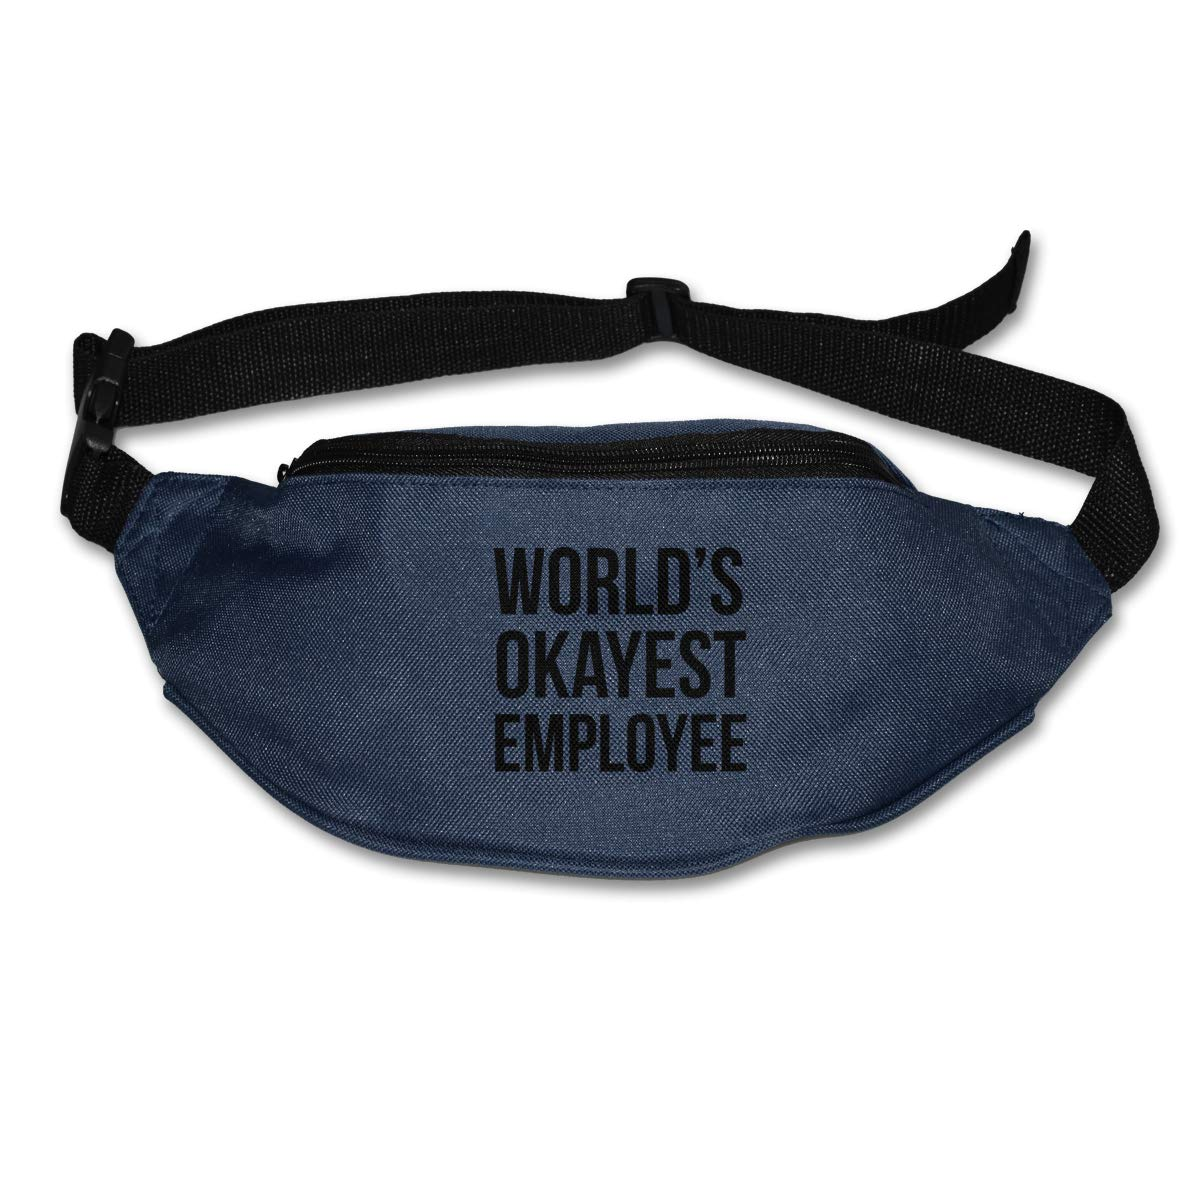 Worlds Okayest Employee Sport Waist Pack Fanny Pack Adjustable For Travel